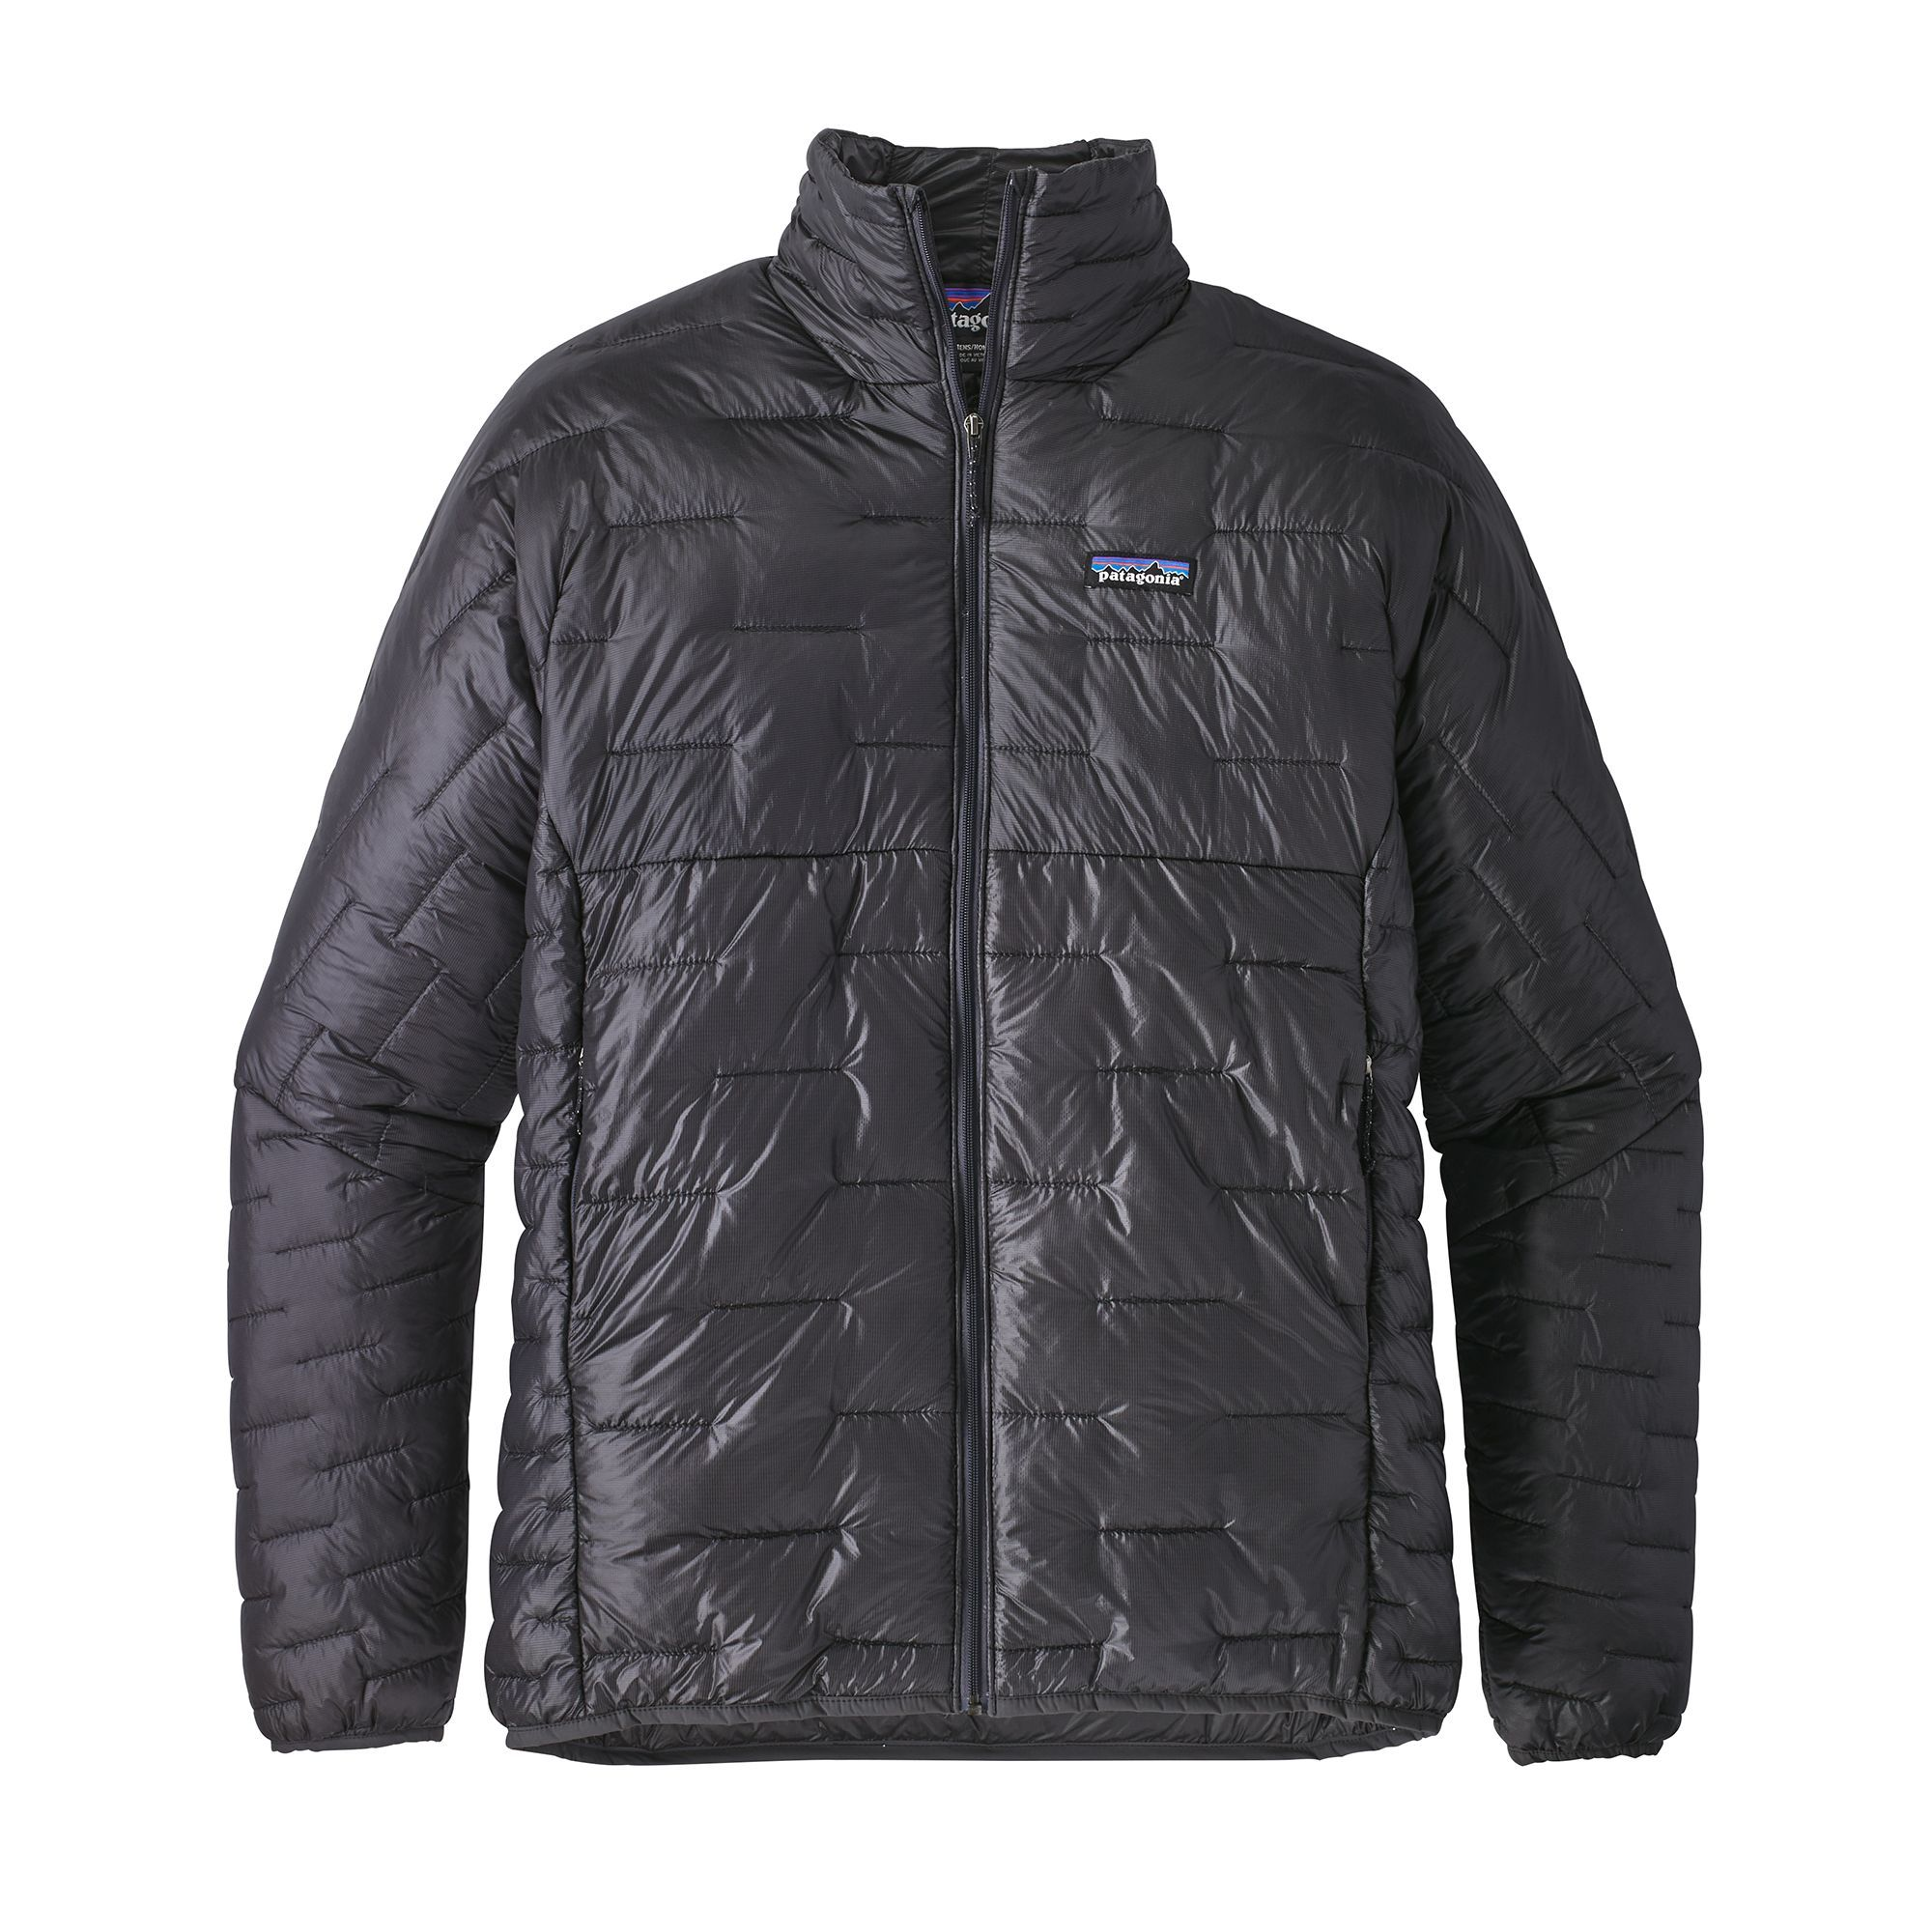 Patagonia Men S Micro Puff Jacket In Forge Grey Is Slim Enough To Fit Under Your Uniqlo Black Smart Co Insulated Jackets Mens Jackets Patagonia Mens